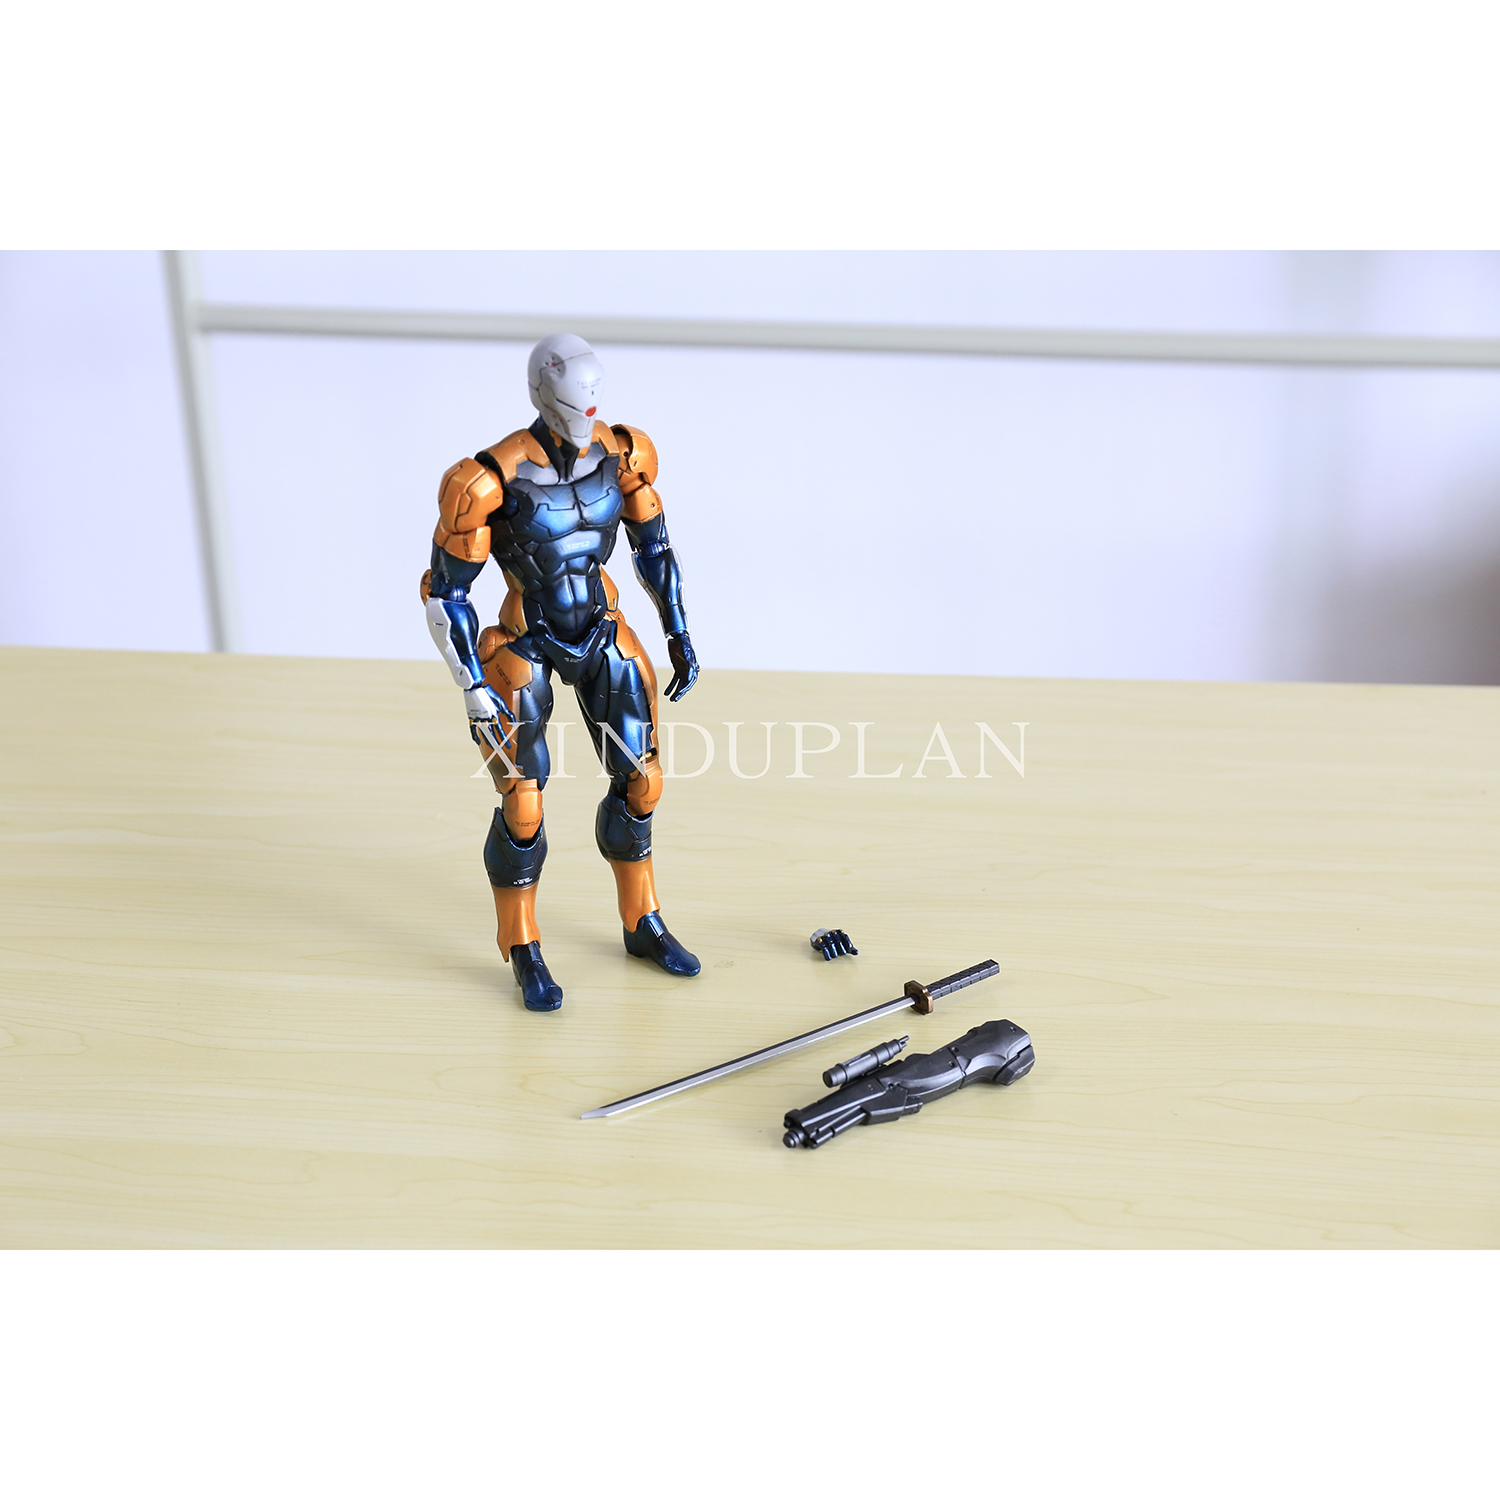 XINDUPLAN Play Arts Kai Metal Gear Solid V Gray fox Action Figure Toys 24cm Kids Gift Collection Model 0946 metal gear solid v the phantom pain play arts flaming man action figure super hero